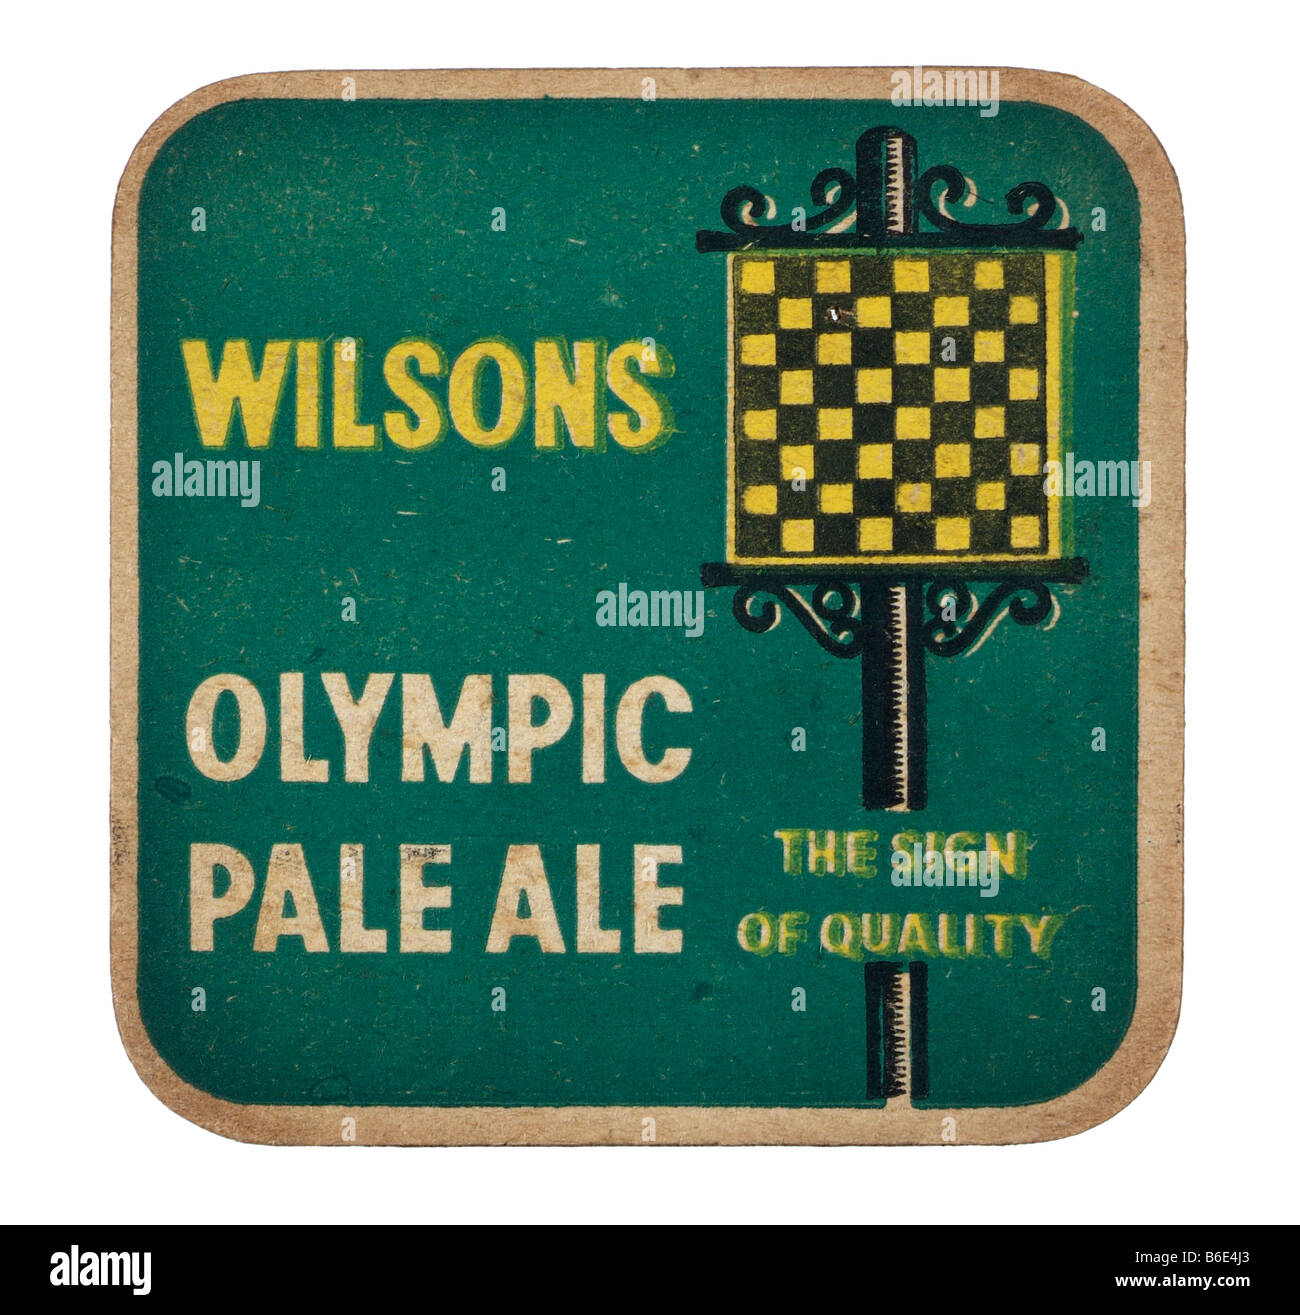 wilsons olympic pale ale the sign of quality - Stock Image